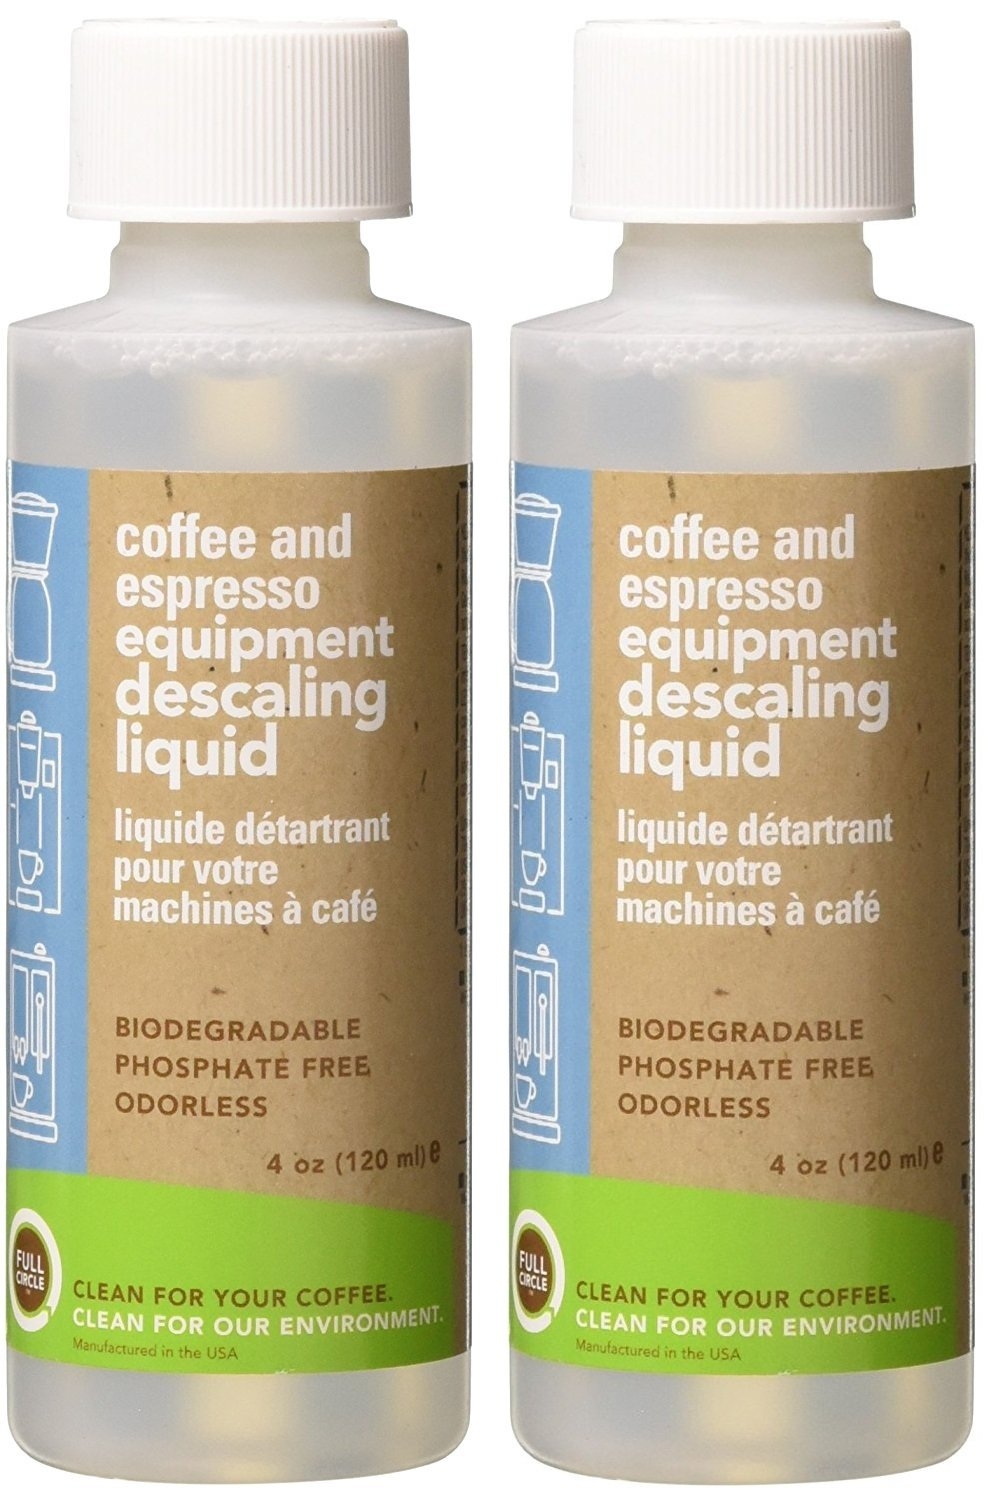 Full Circle Coffee and Espresso Descaler and Cleaner Liquid - 4 oz [ 2 Single Use Bottles ] - Safe On Keurig Delonghi Nespresso Ninja Hamilton Beach Mr Coffee Bruan and More